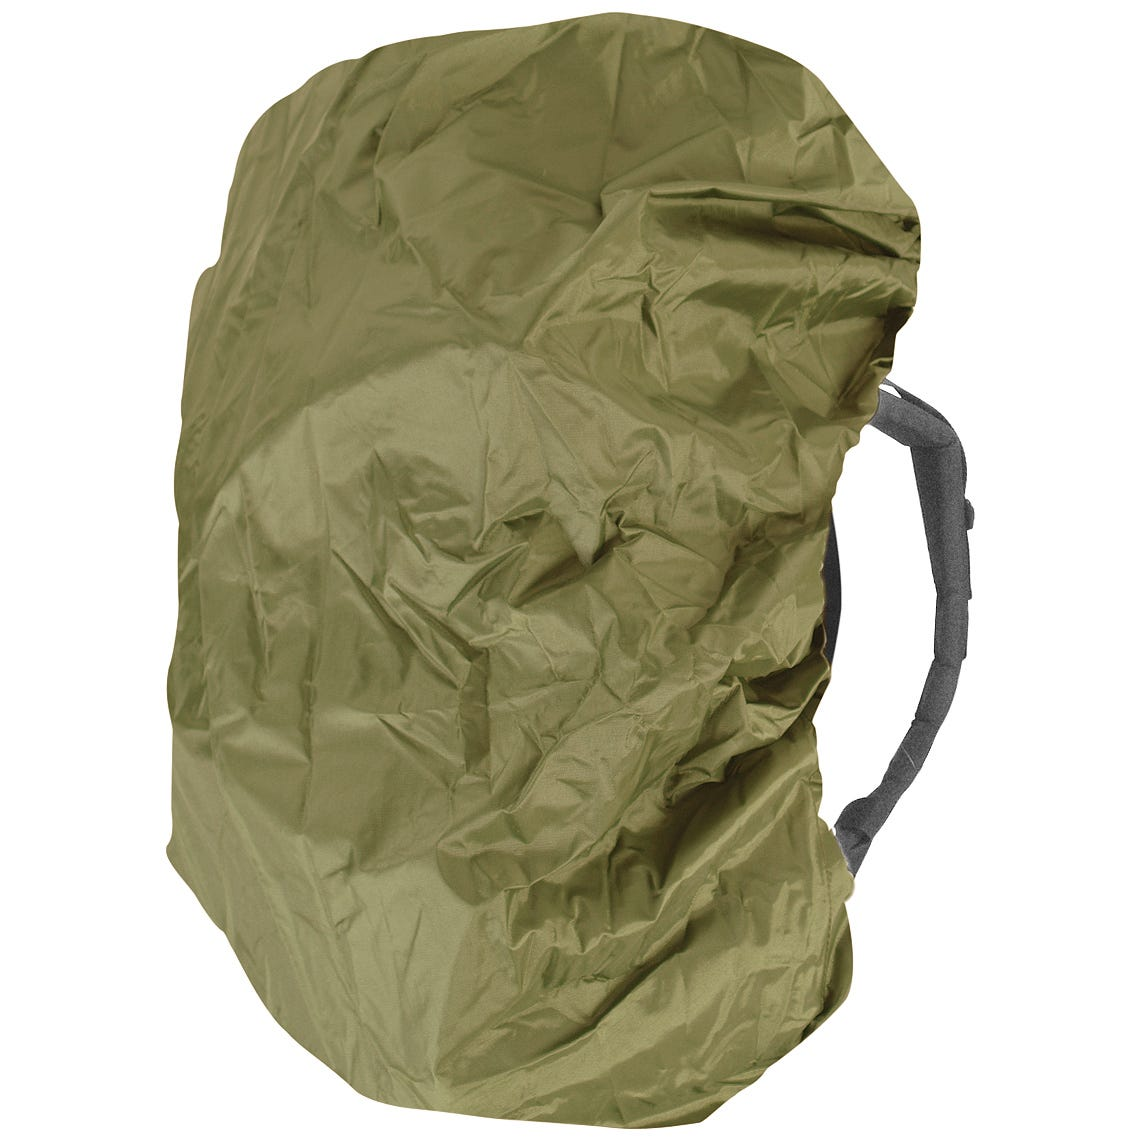 469acf2d30a Mil-Tec BW Backpack Rain Cover Coyote